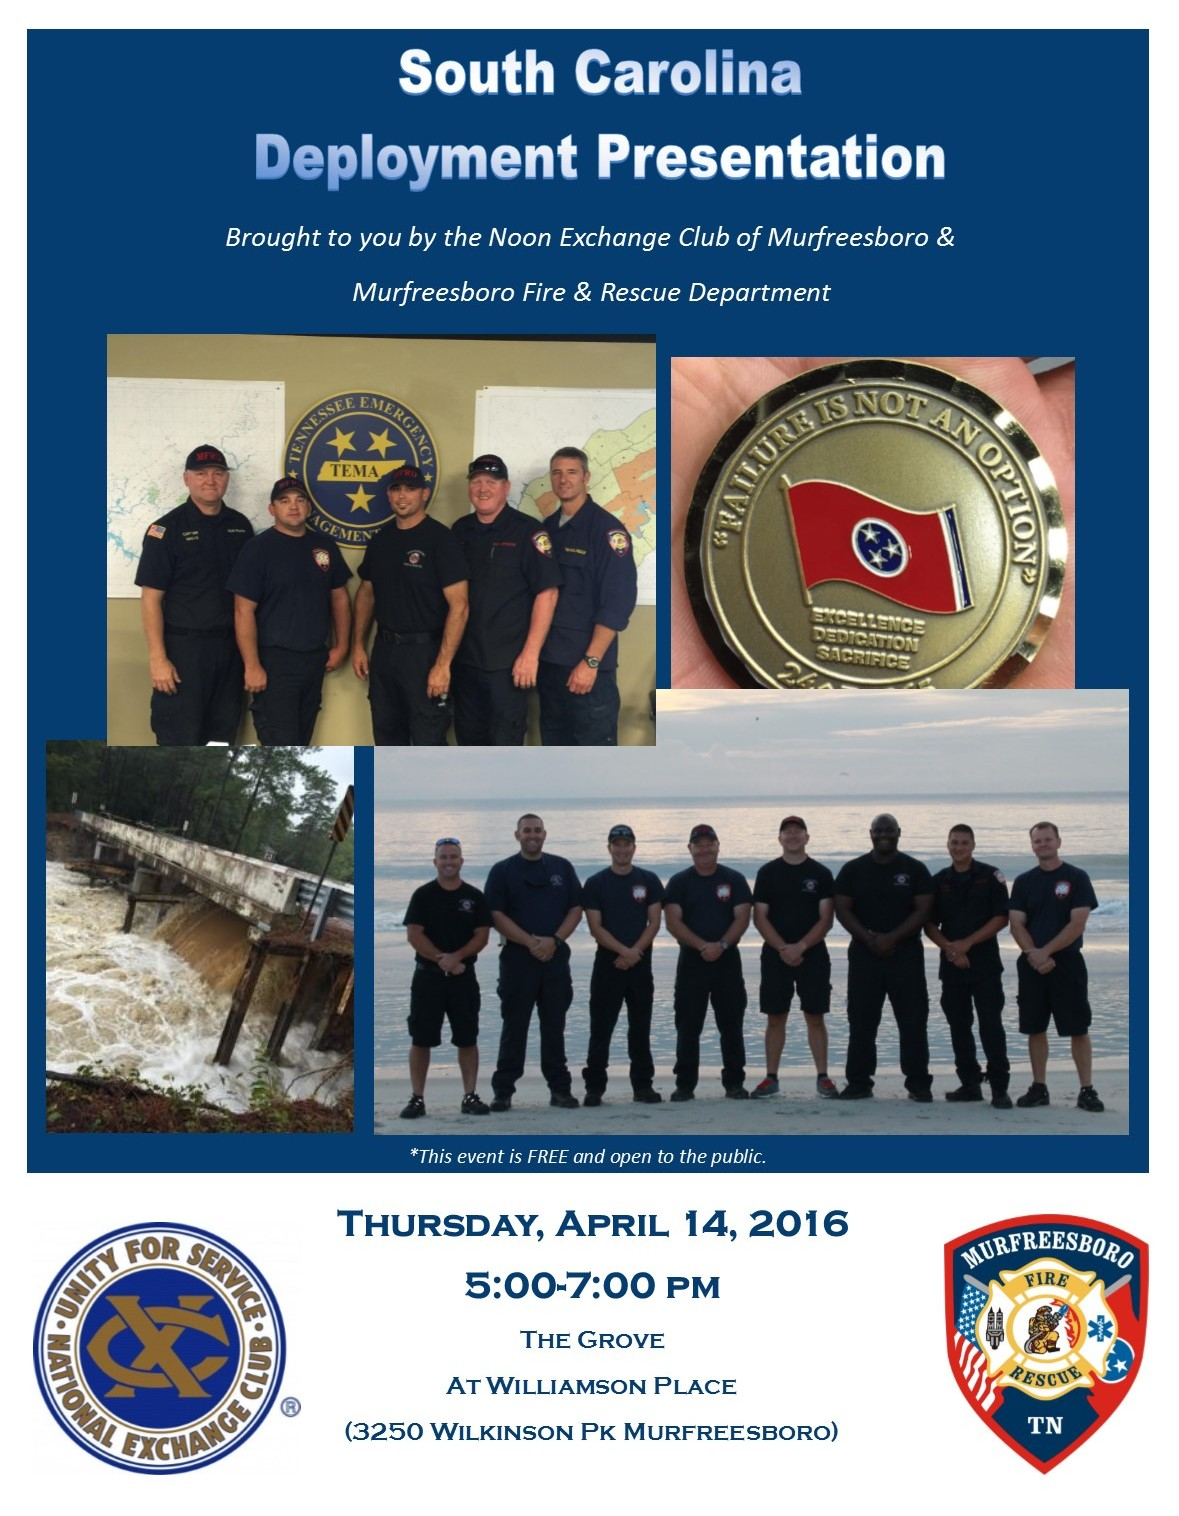 Murfreesboro Fire and Rescue Partners with Noon Exchange Club to Offer Free South Carolina Presentation to Public